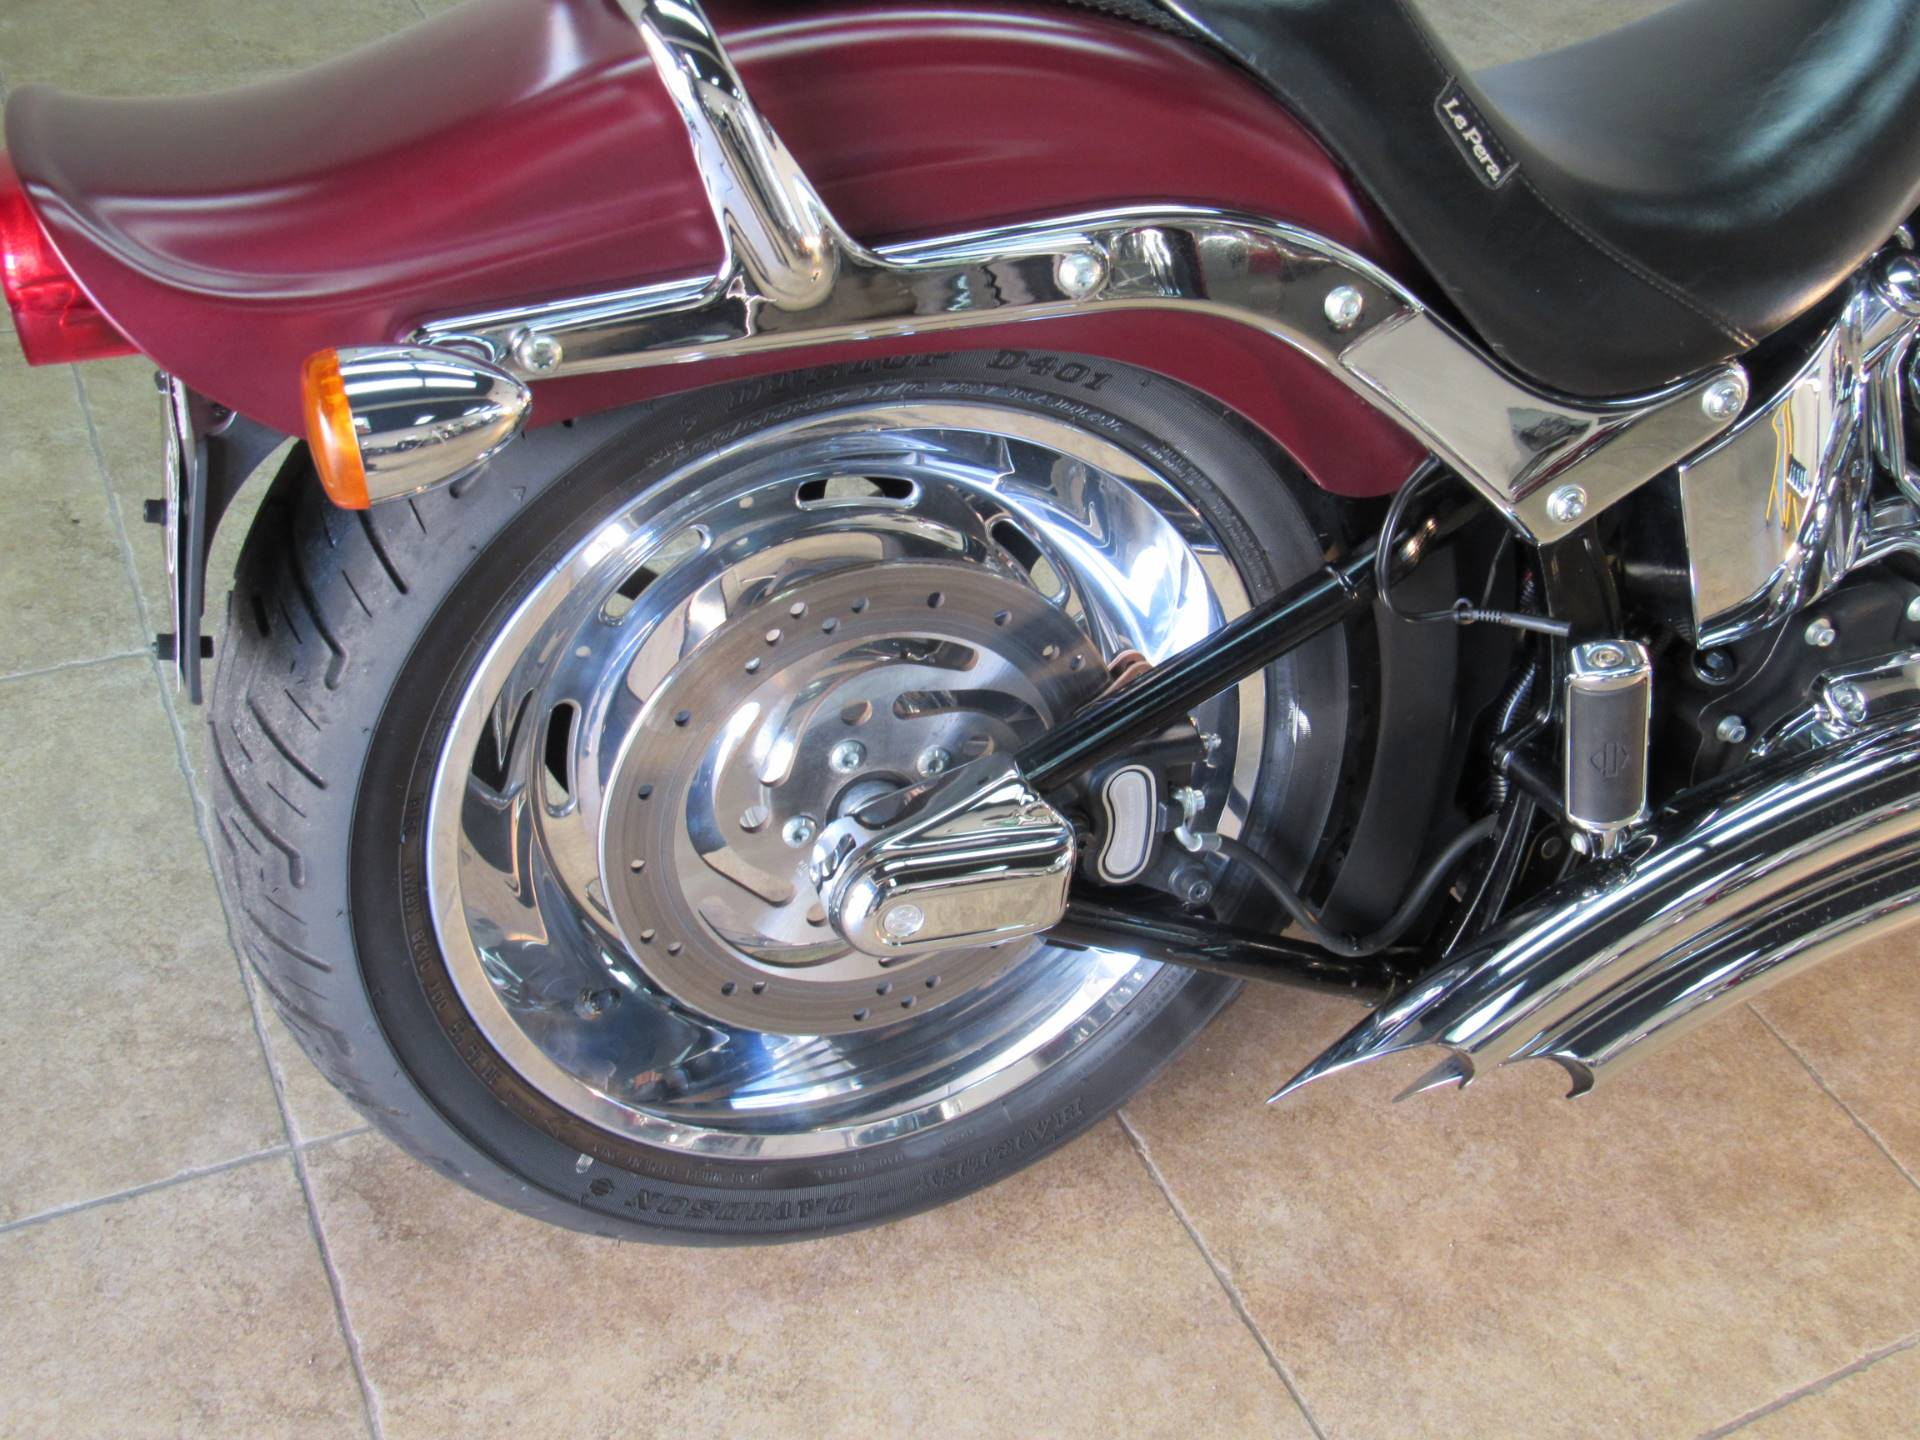 2008 Harley-Davidson Softail® Custom in Temecula, California